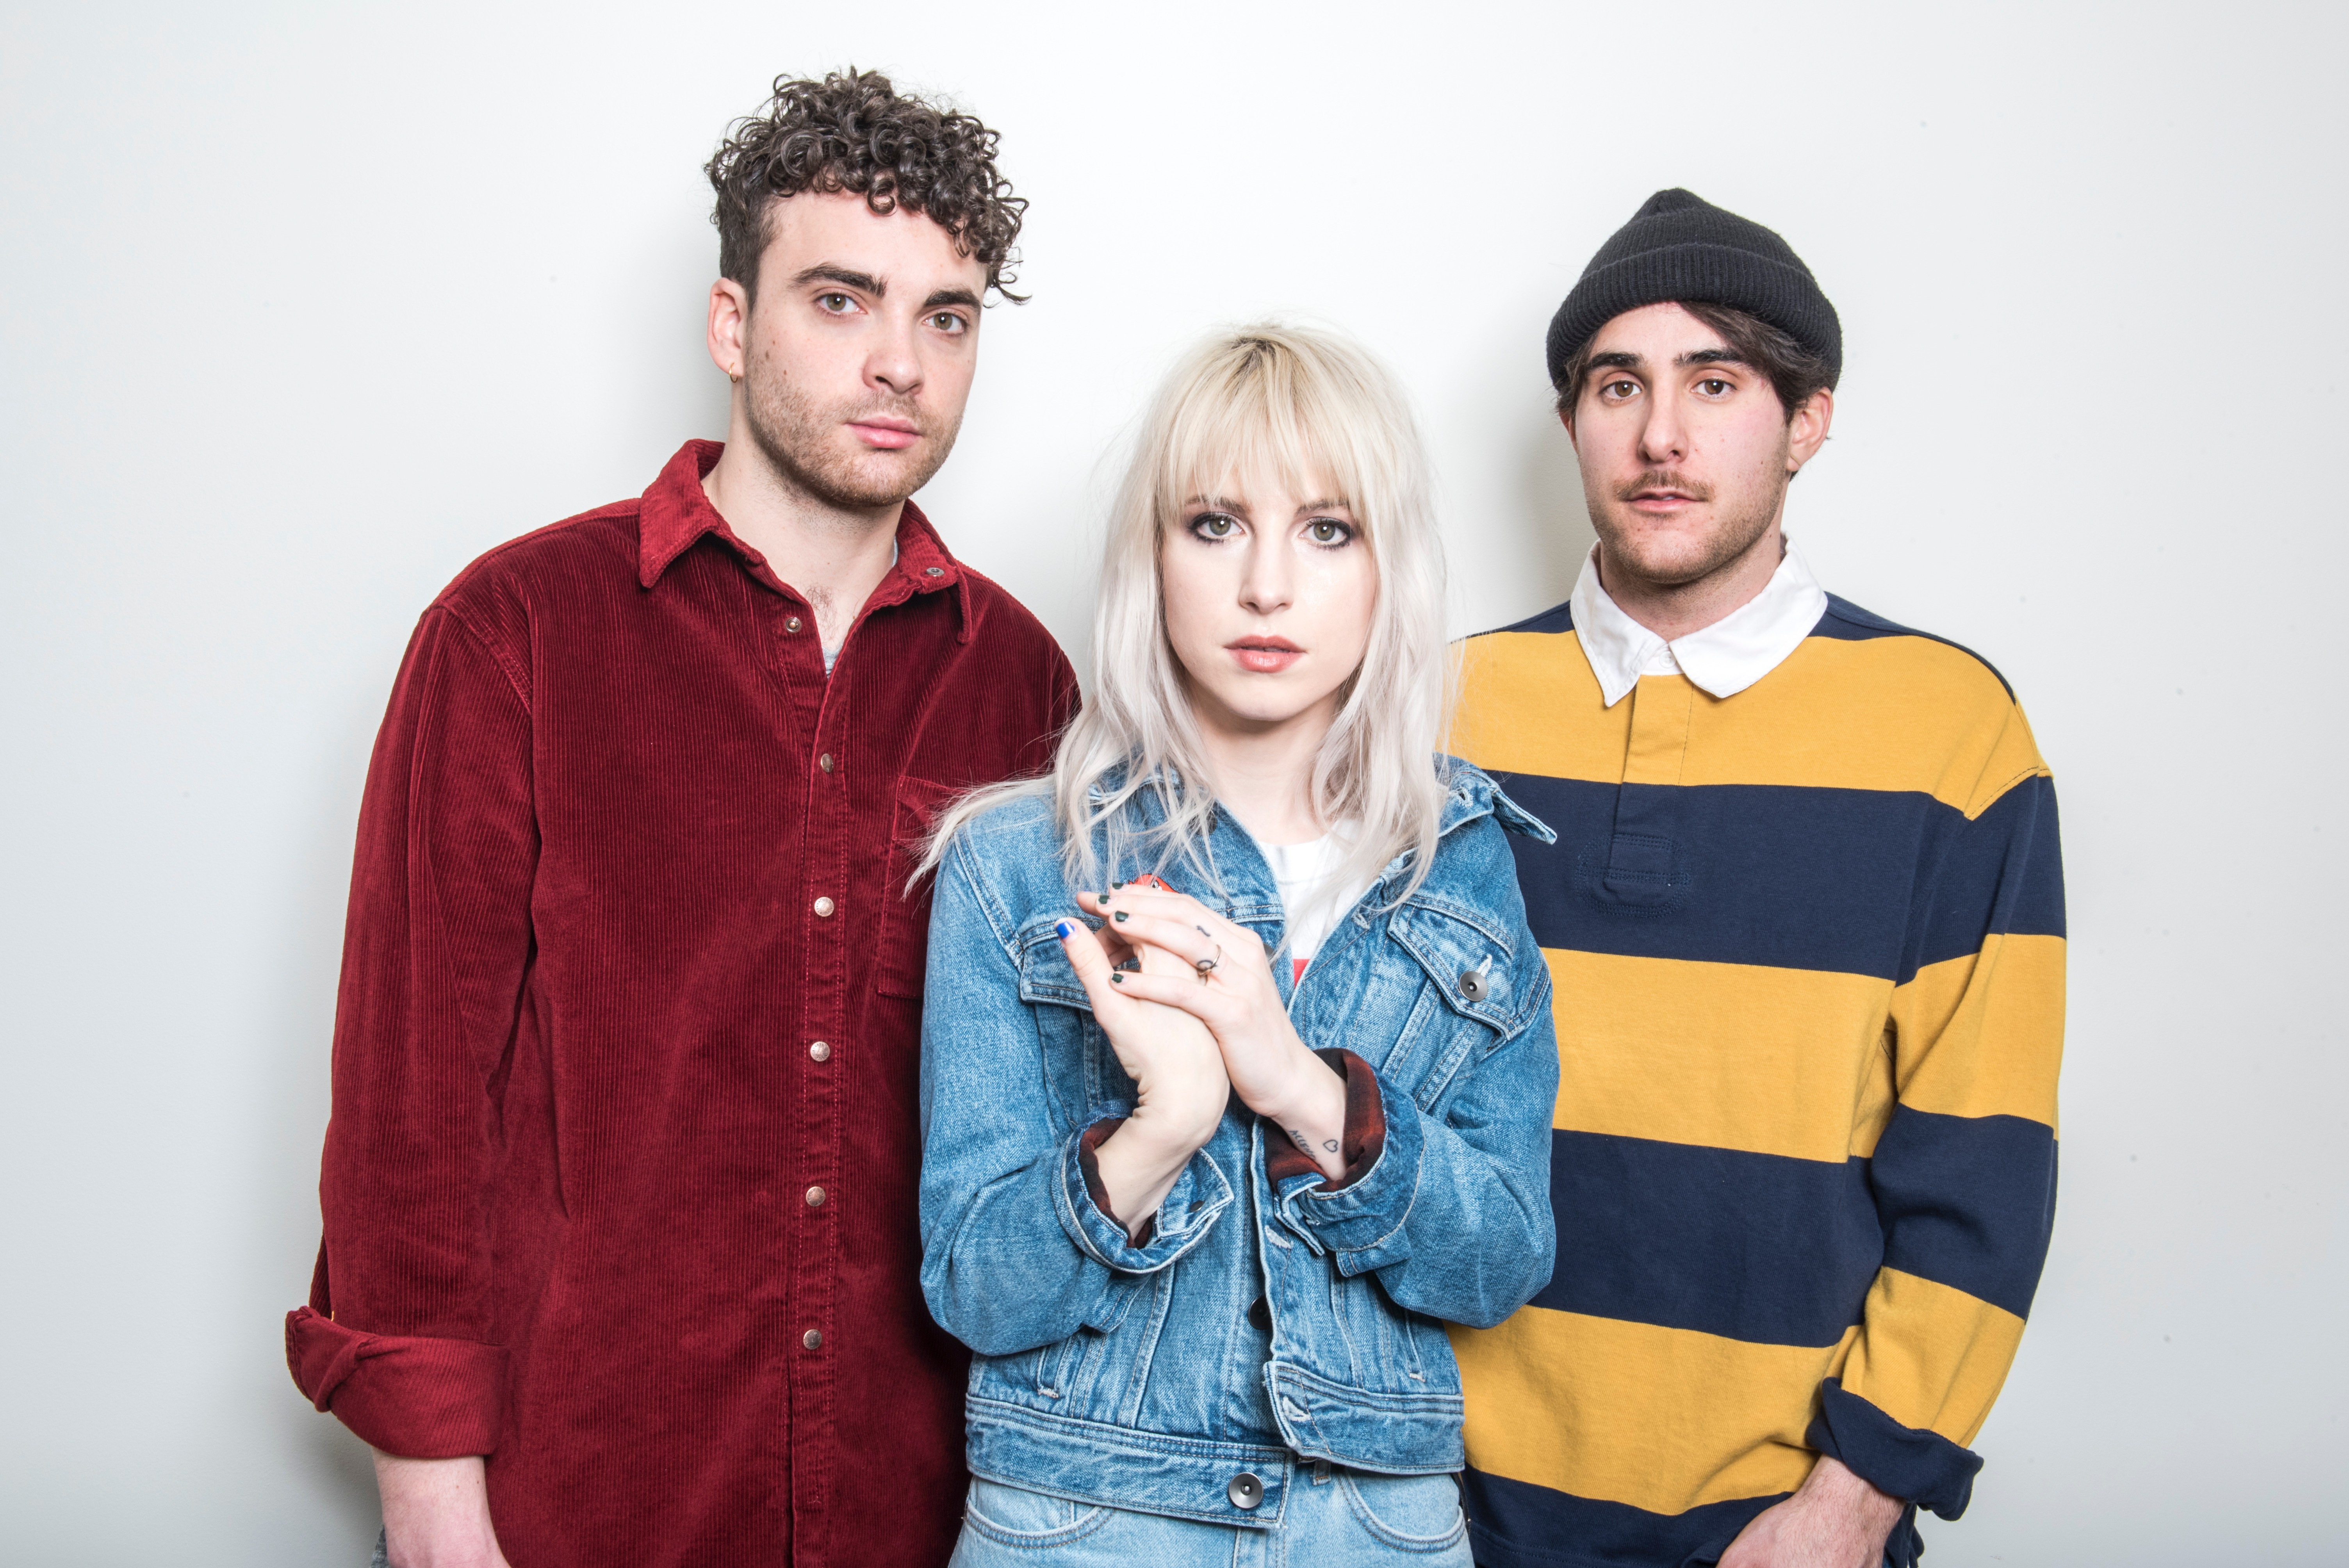 Indie Rockers Paramore To Play The Akron Civic In October